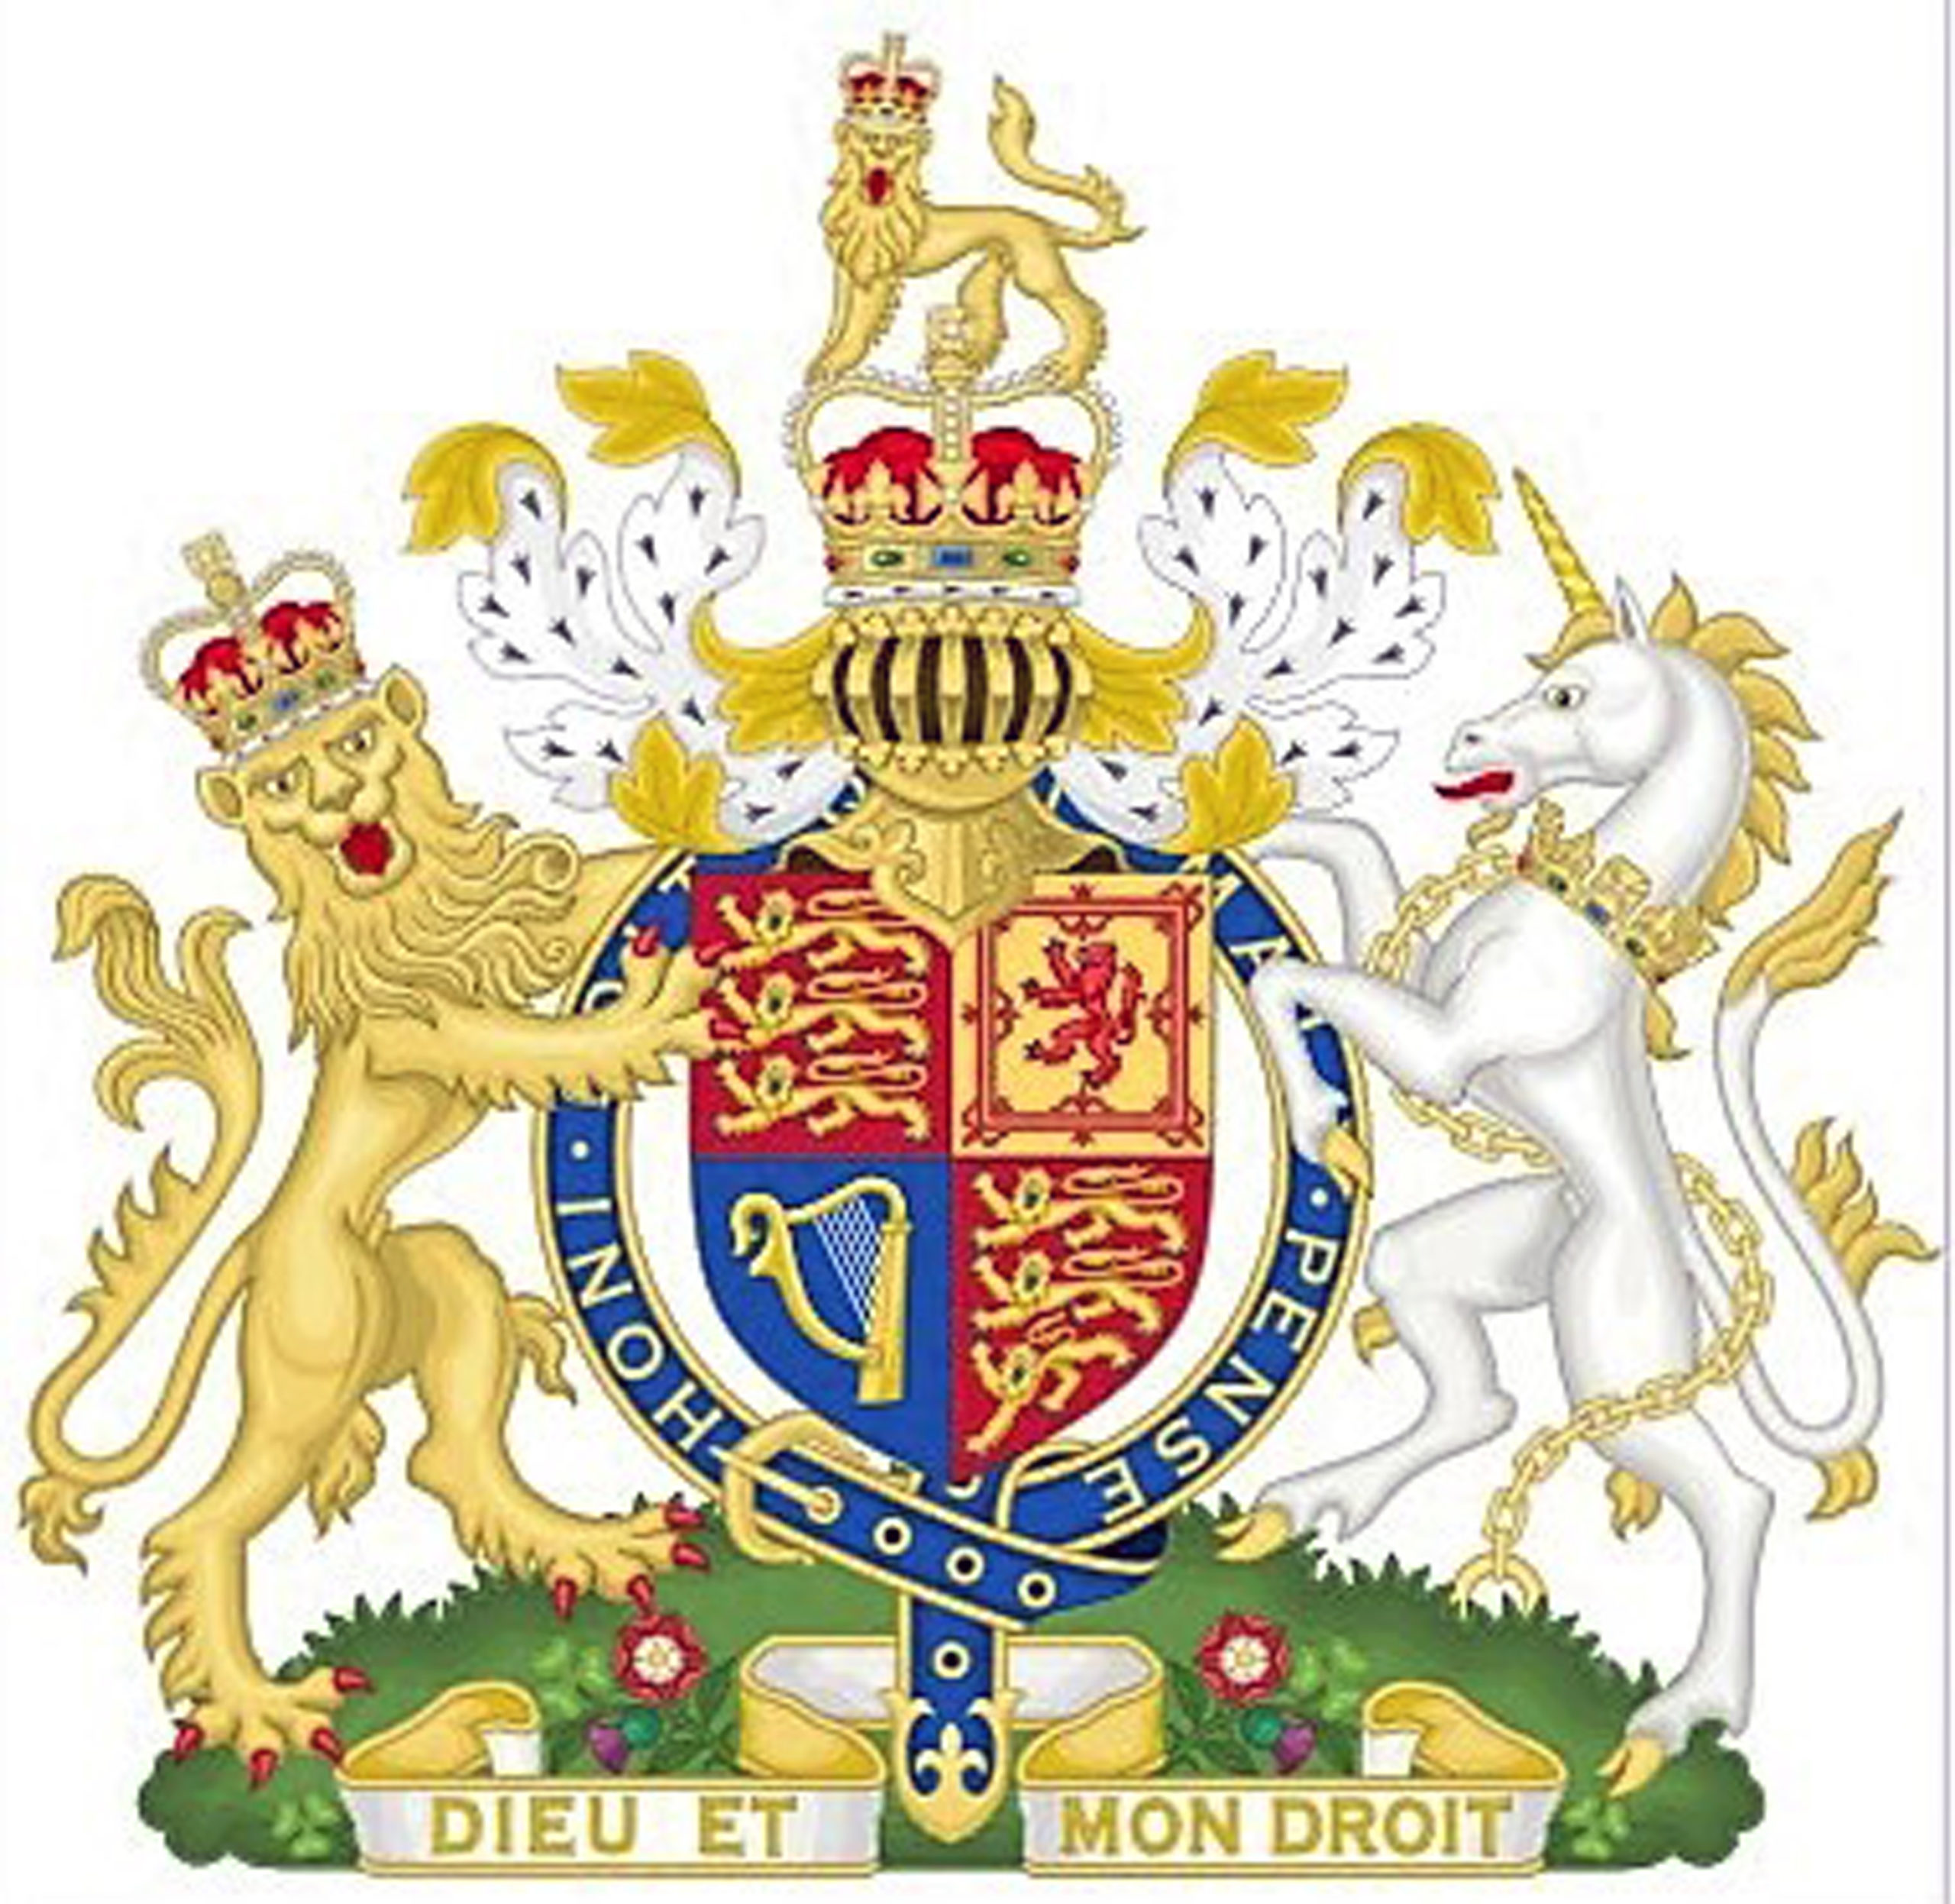 Royal Coat of Arms of the UK 24.06.16 1 scaled